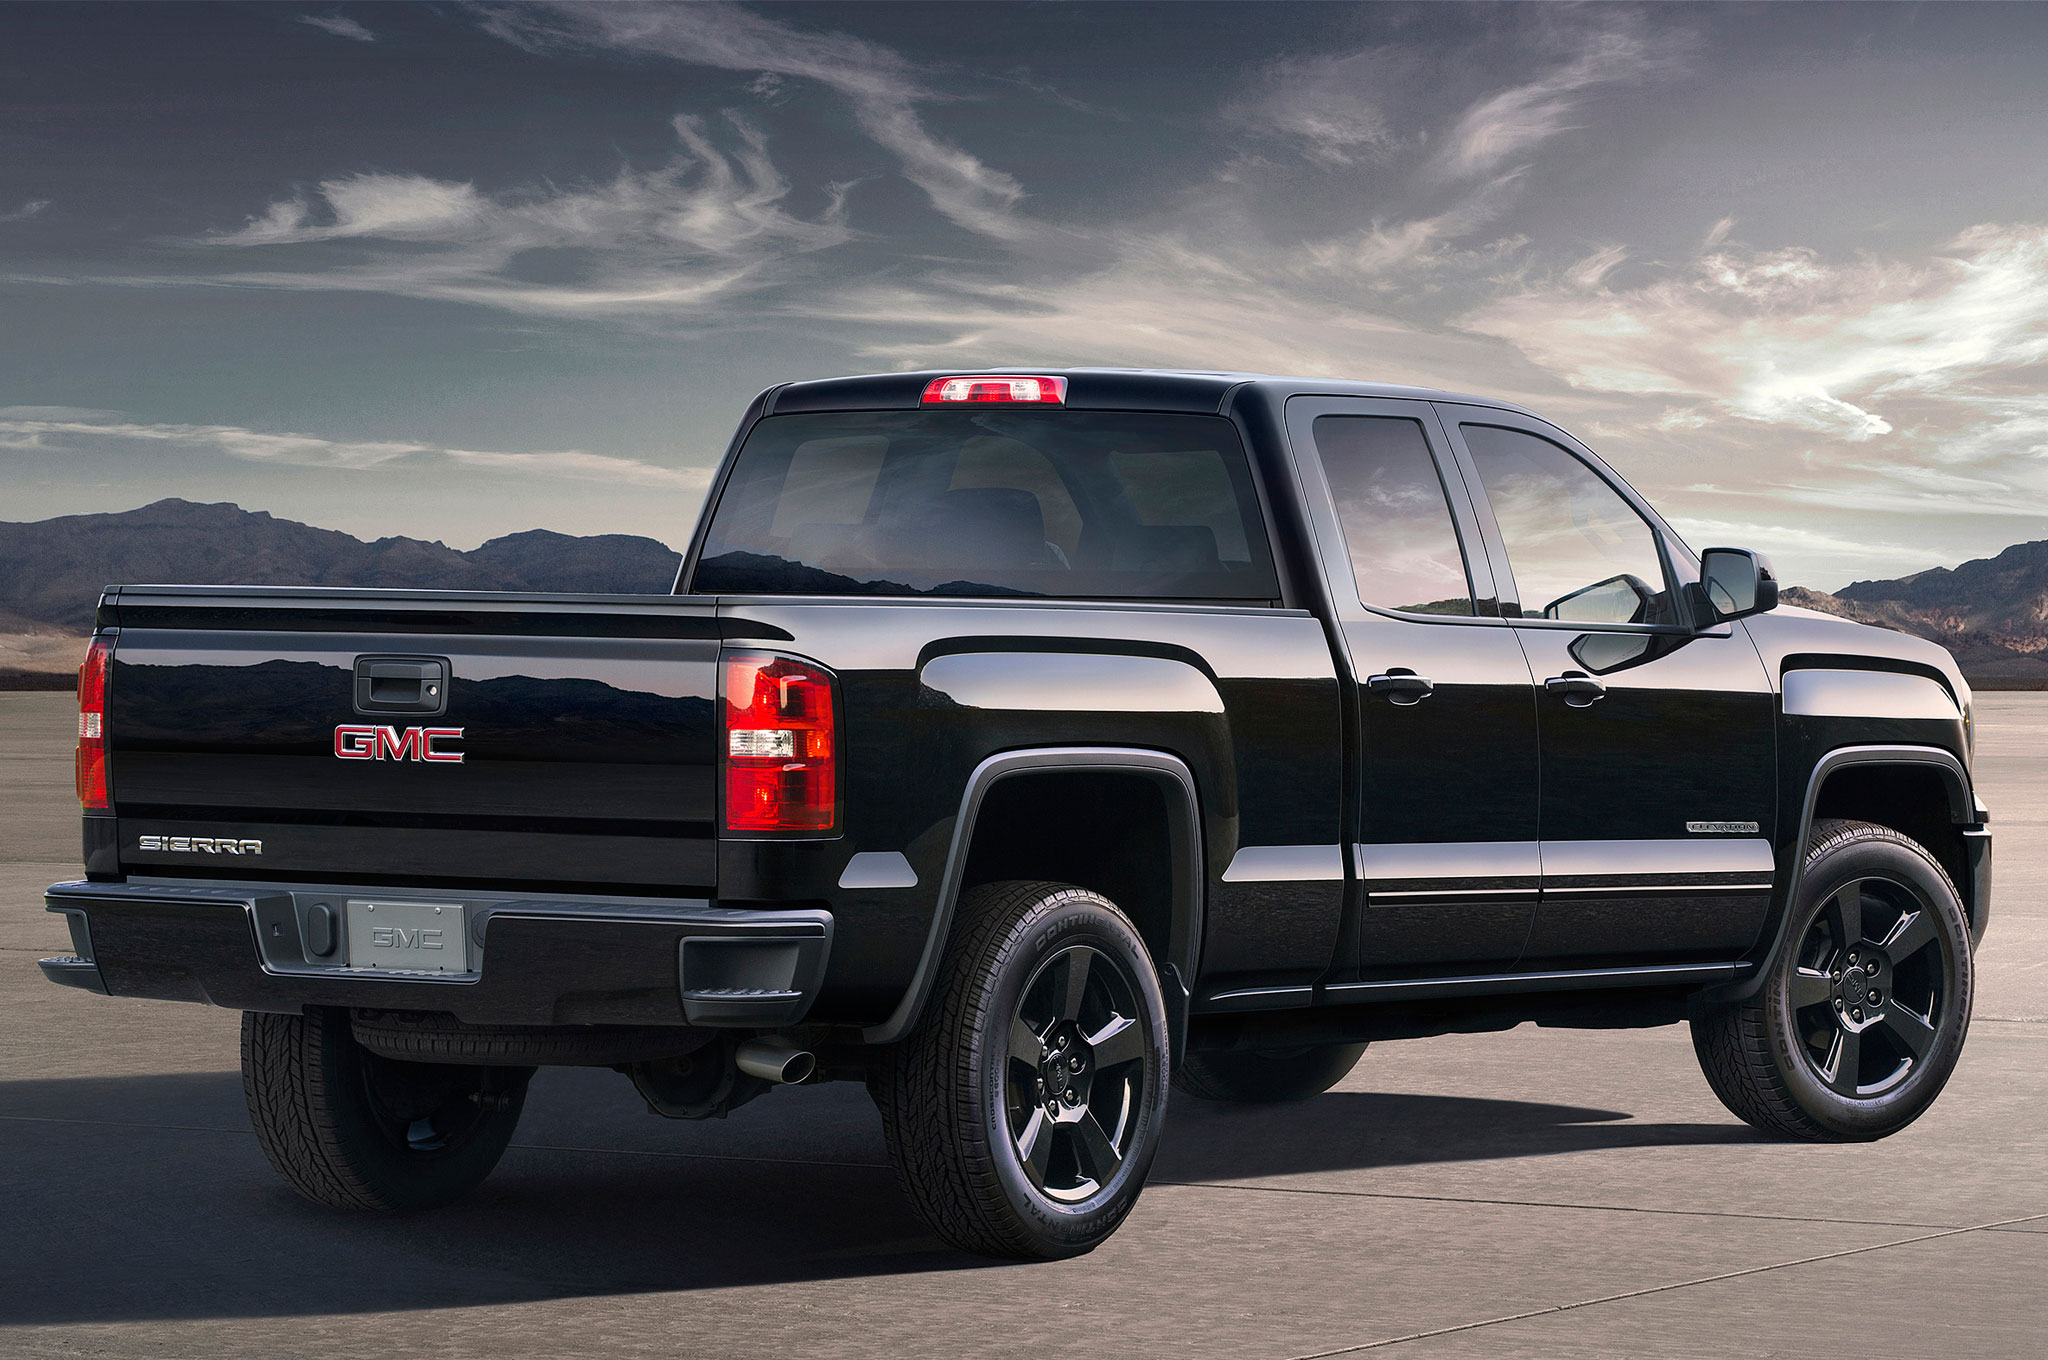 As On All Models Of The Sierra 1500 2016 Gmc Elevation Edition Wears A New Front Fascia With Led Running Lights And Hid Headlights